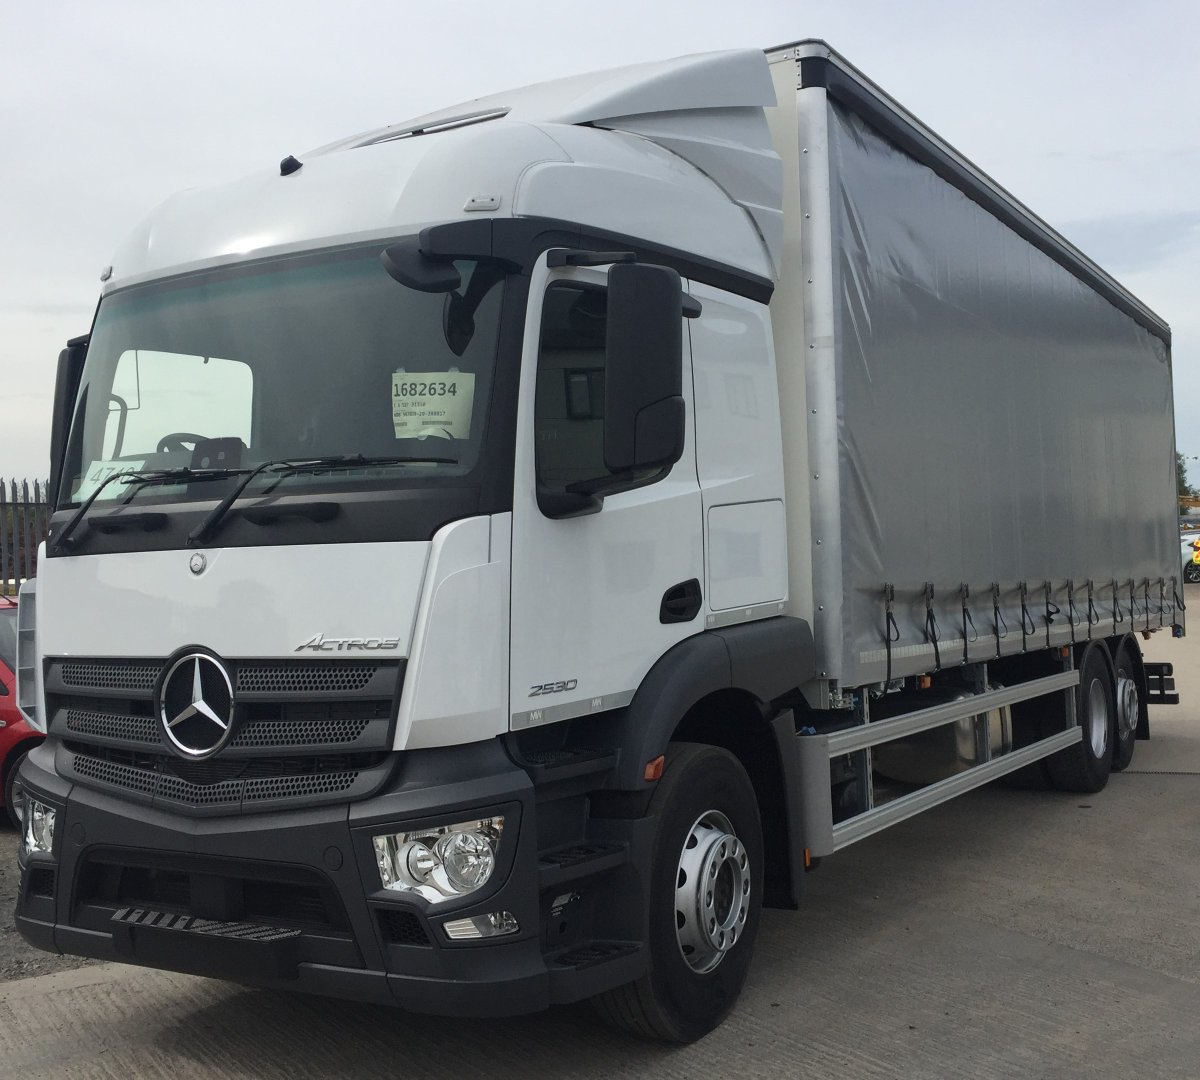 test Twitter Media - 26t Mercedes Actros Curtainsider With Moffet mount to rear and Metallic silver curtains.   With thanks to Asset Alliance Group and WT Transport   #Mercedes #Actros #Curtainsider #Moffet #MWHull https://t.co/8yAlTOkBbM